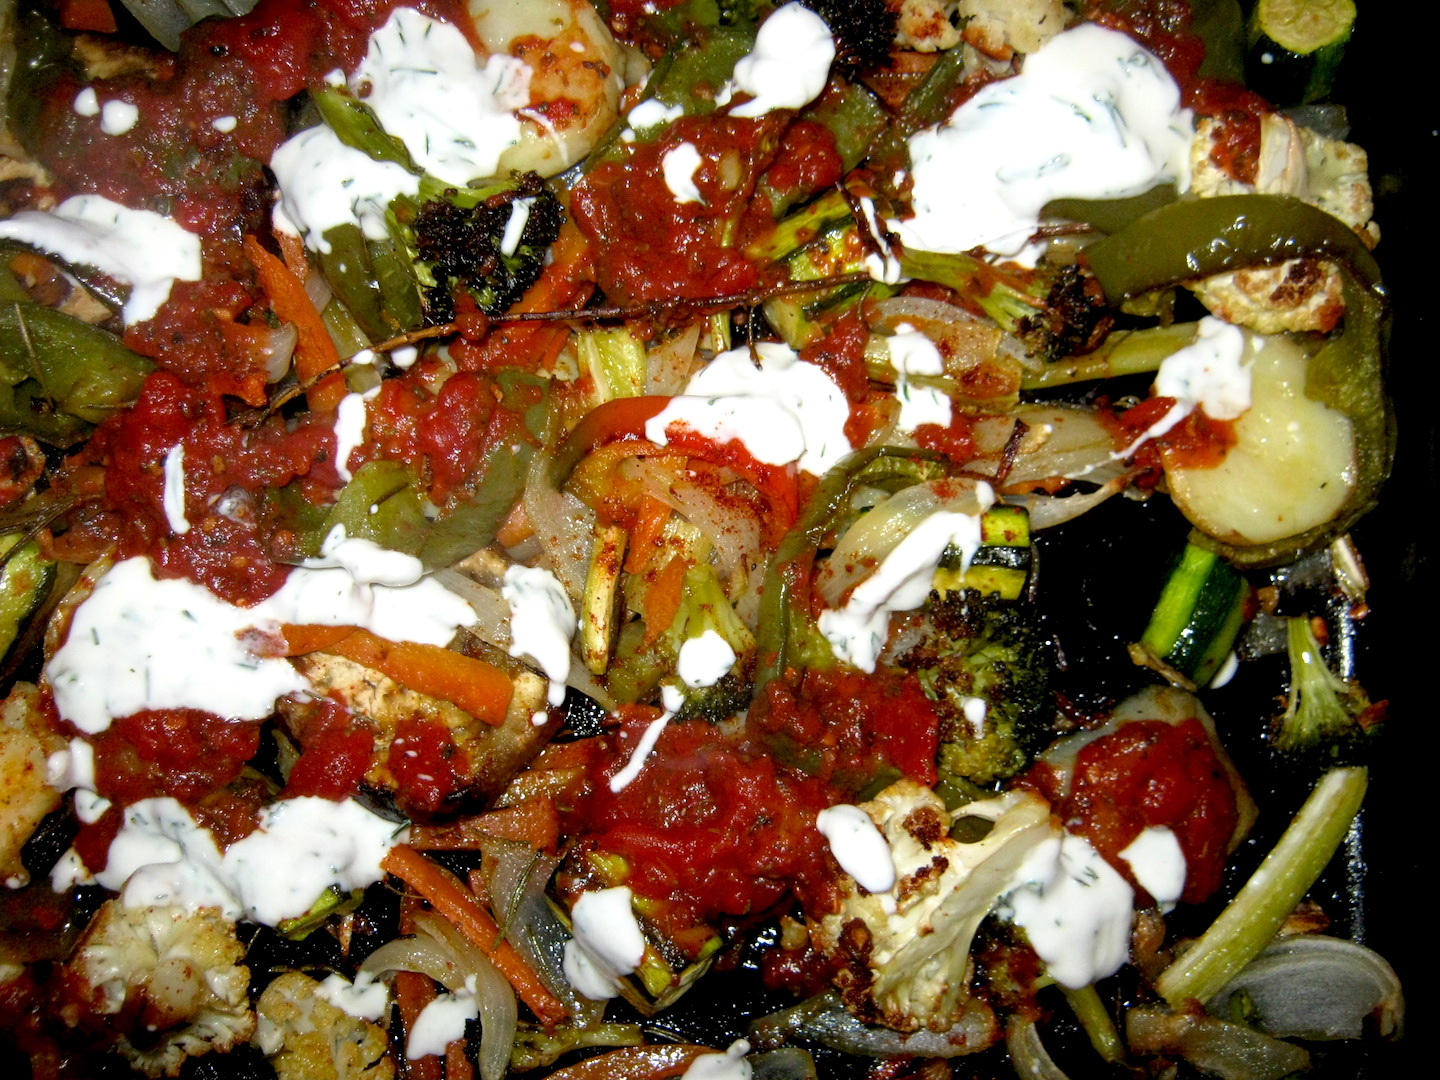 Baked mediterranean vegetables with yoghurt dip and spiced cooked tomato sauce